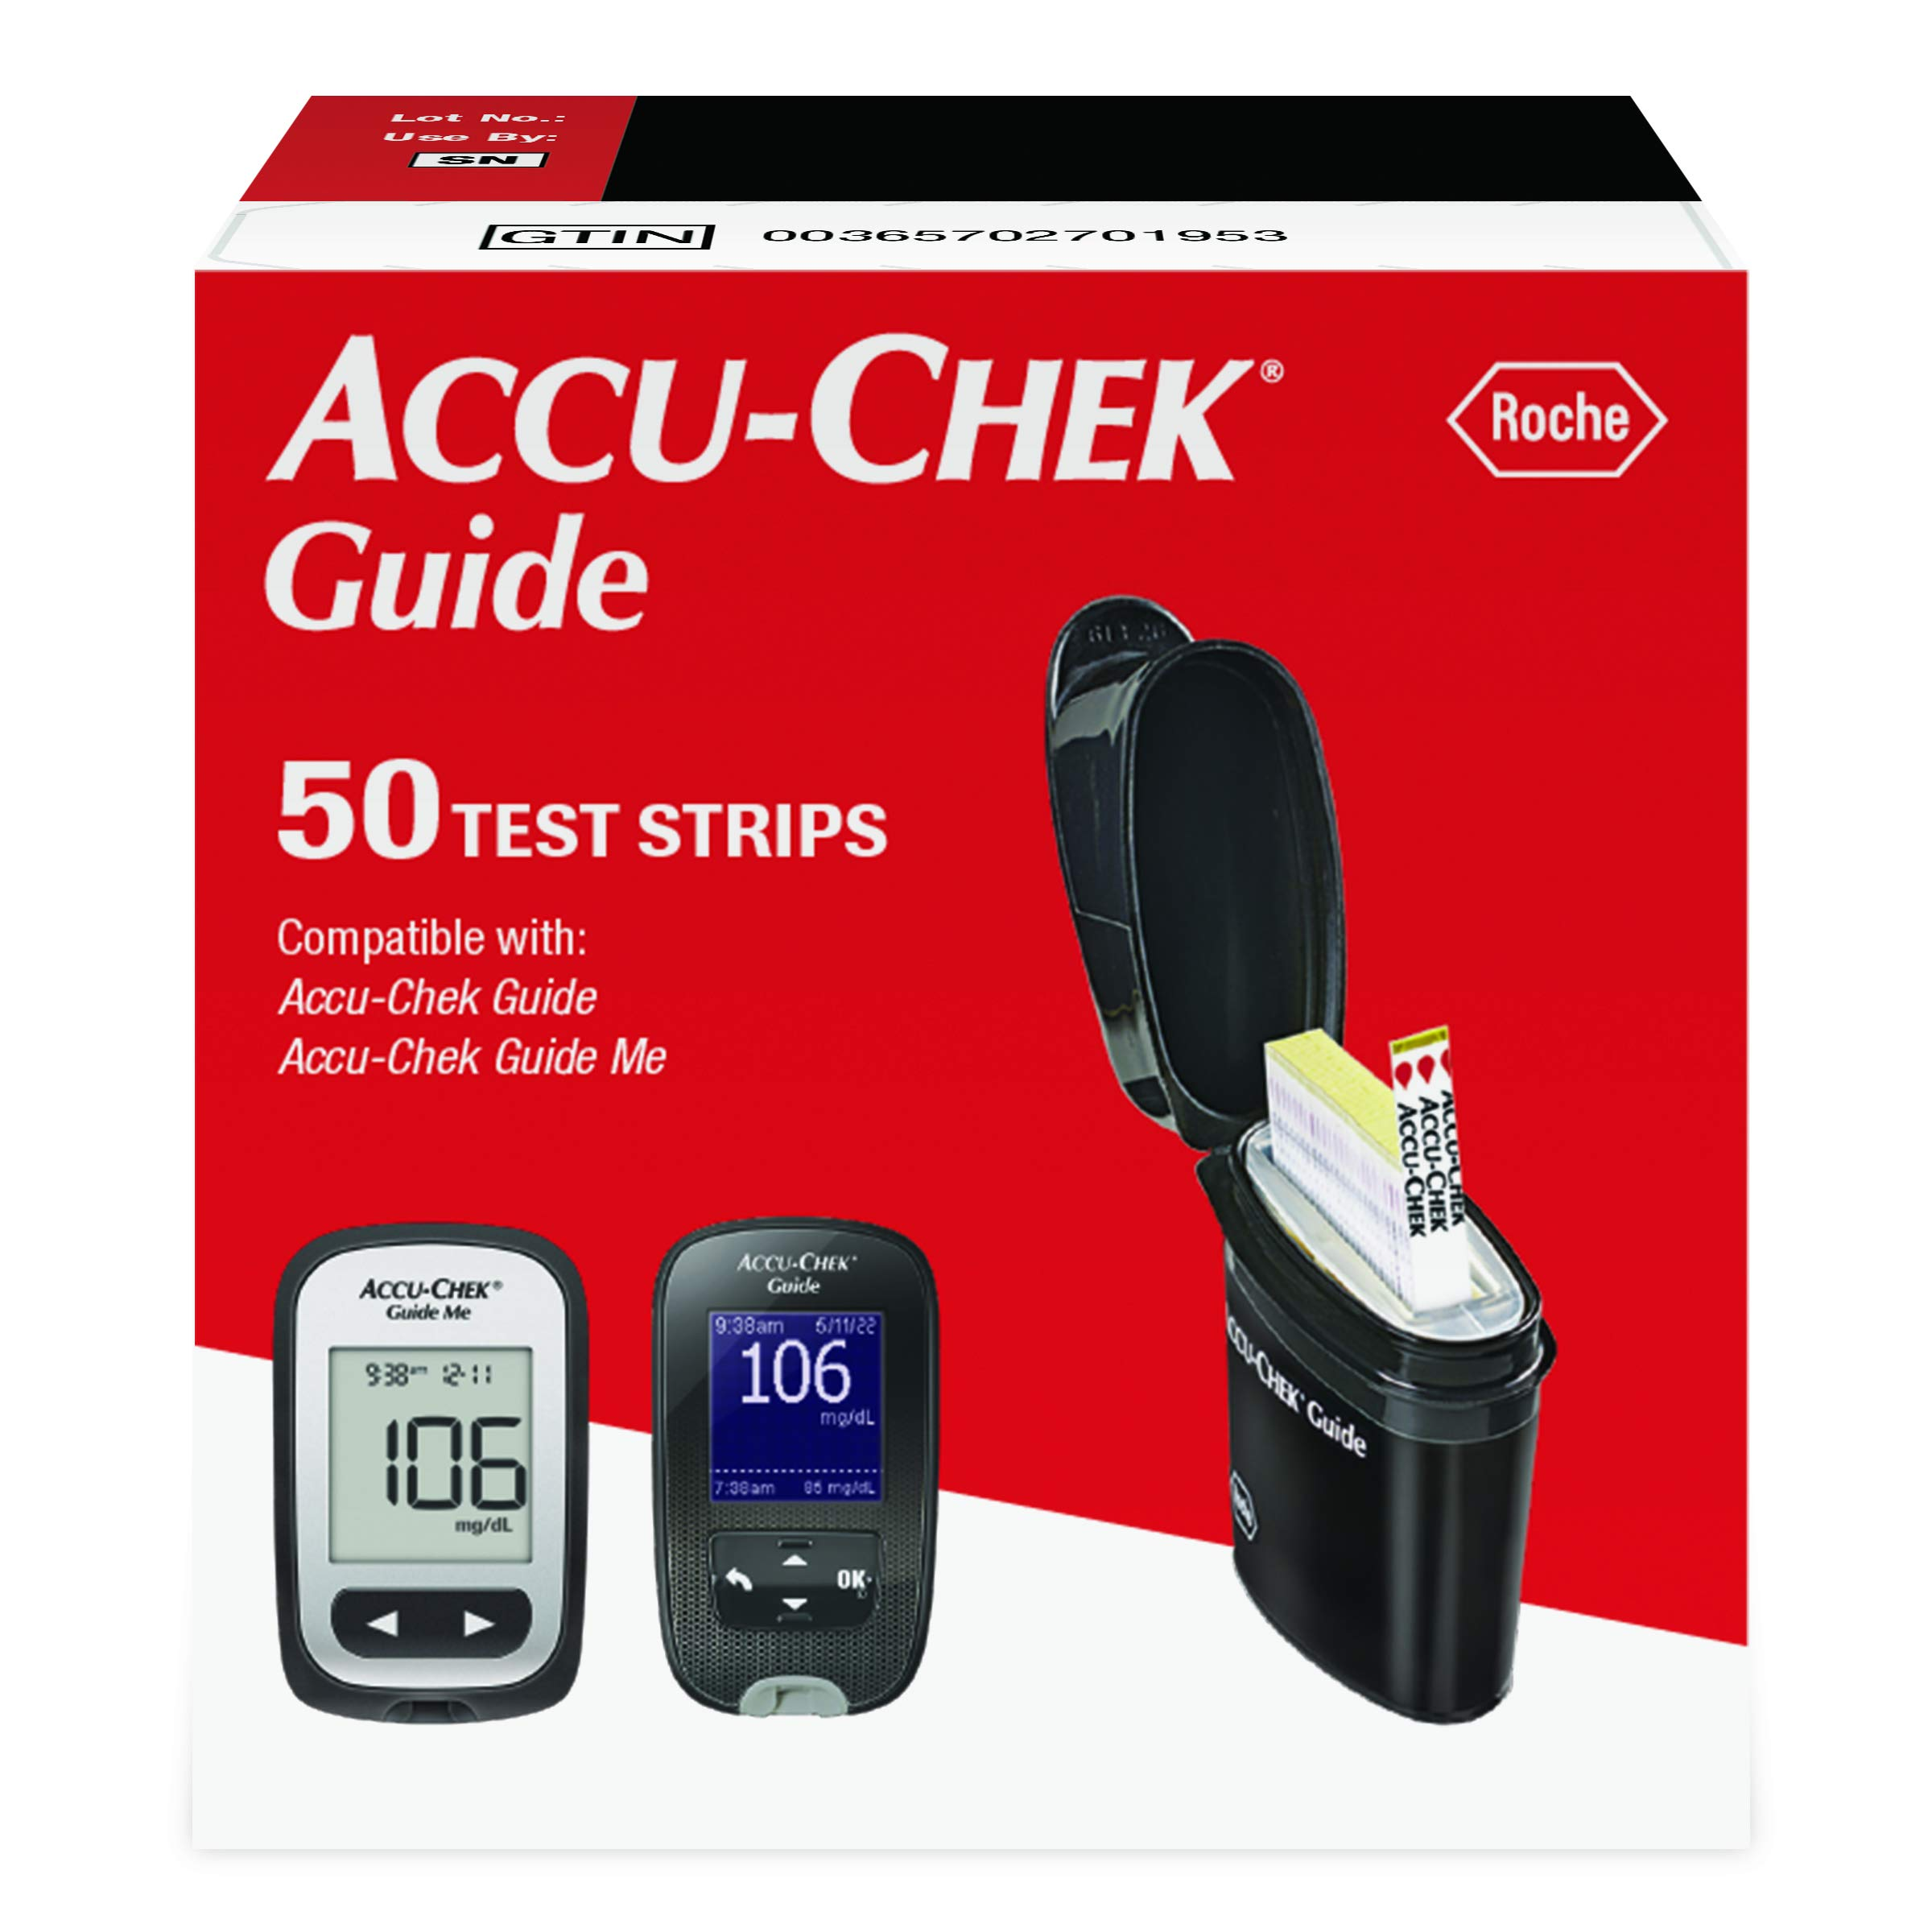 Accu-Chek Guide Test Strips - 50 ct (0195)